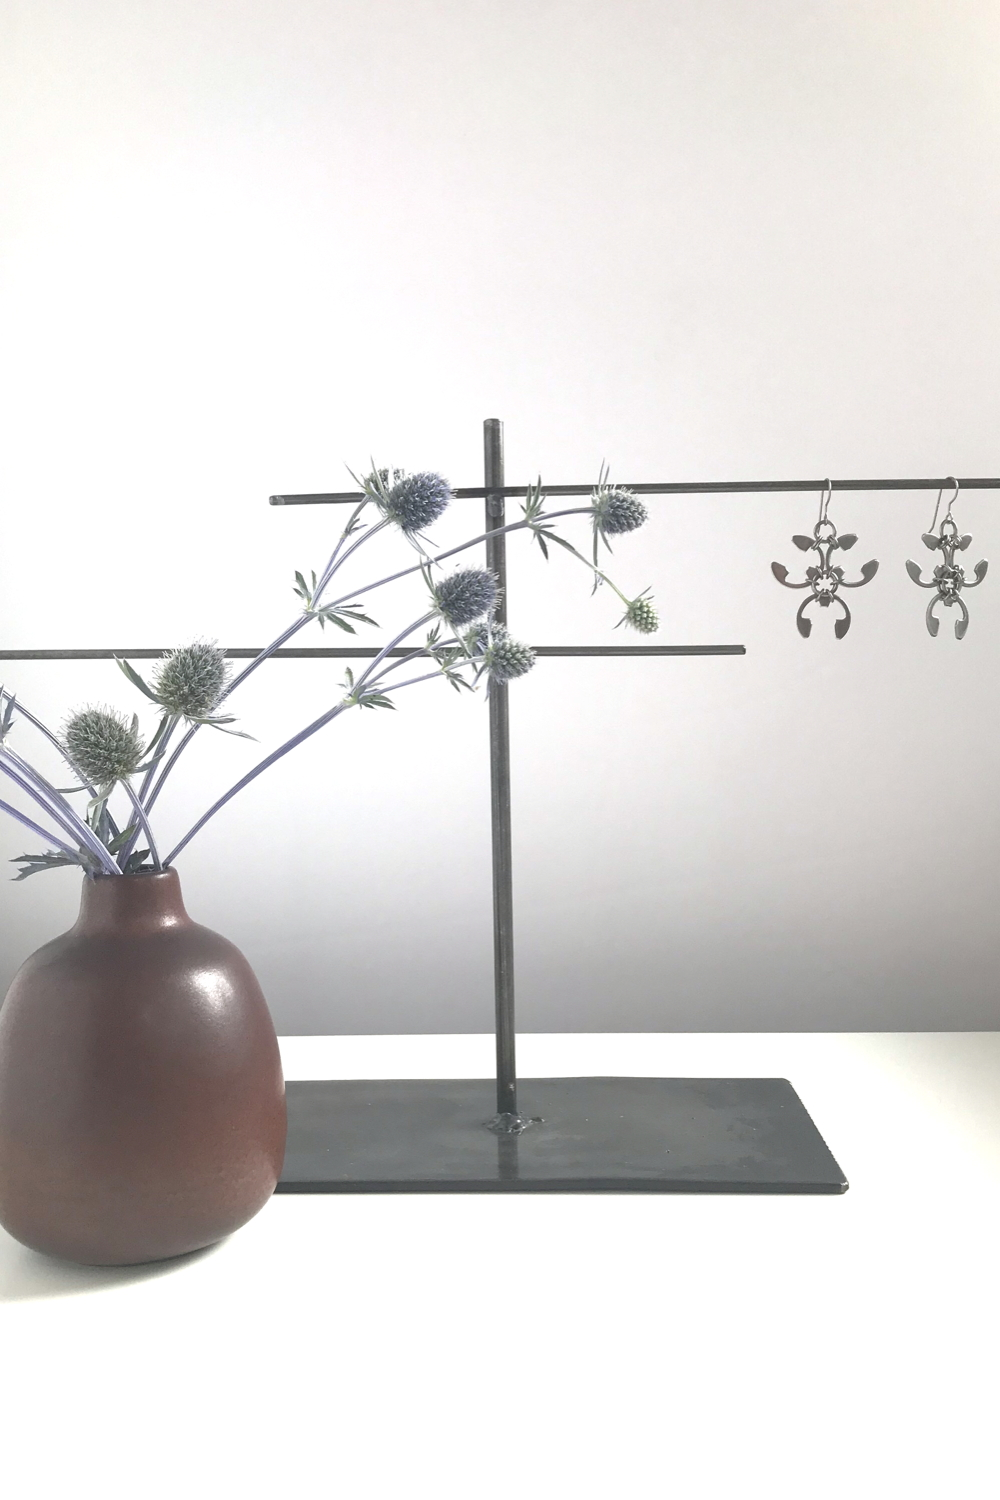 Sea holly (Eryngium) in a brown bud vase by Heath Ceramics on a desk next to a jewelry stand with Wraptillion's spiky floral Trellis Earrings.